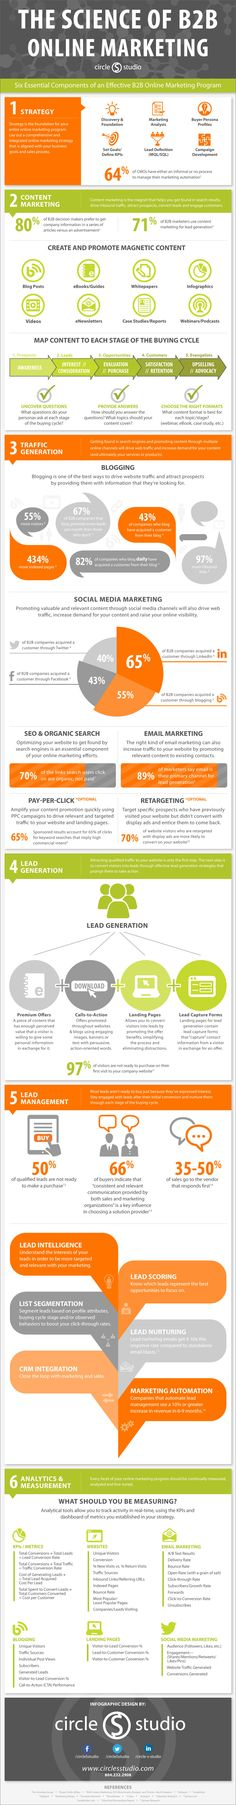 6 Essential Components Of An Effective #B2B Online Marketing Plan [#INFOGRAPHIC] #marketing